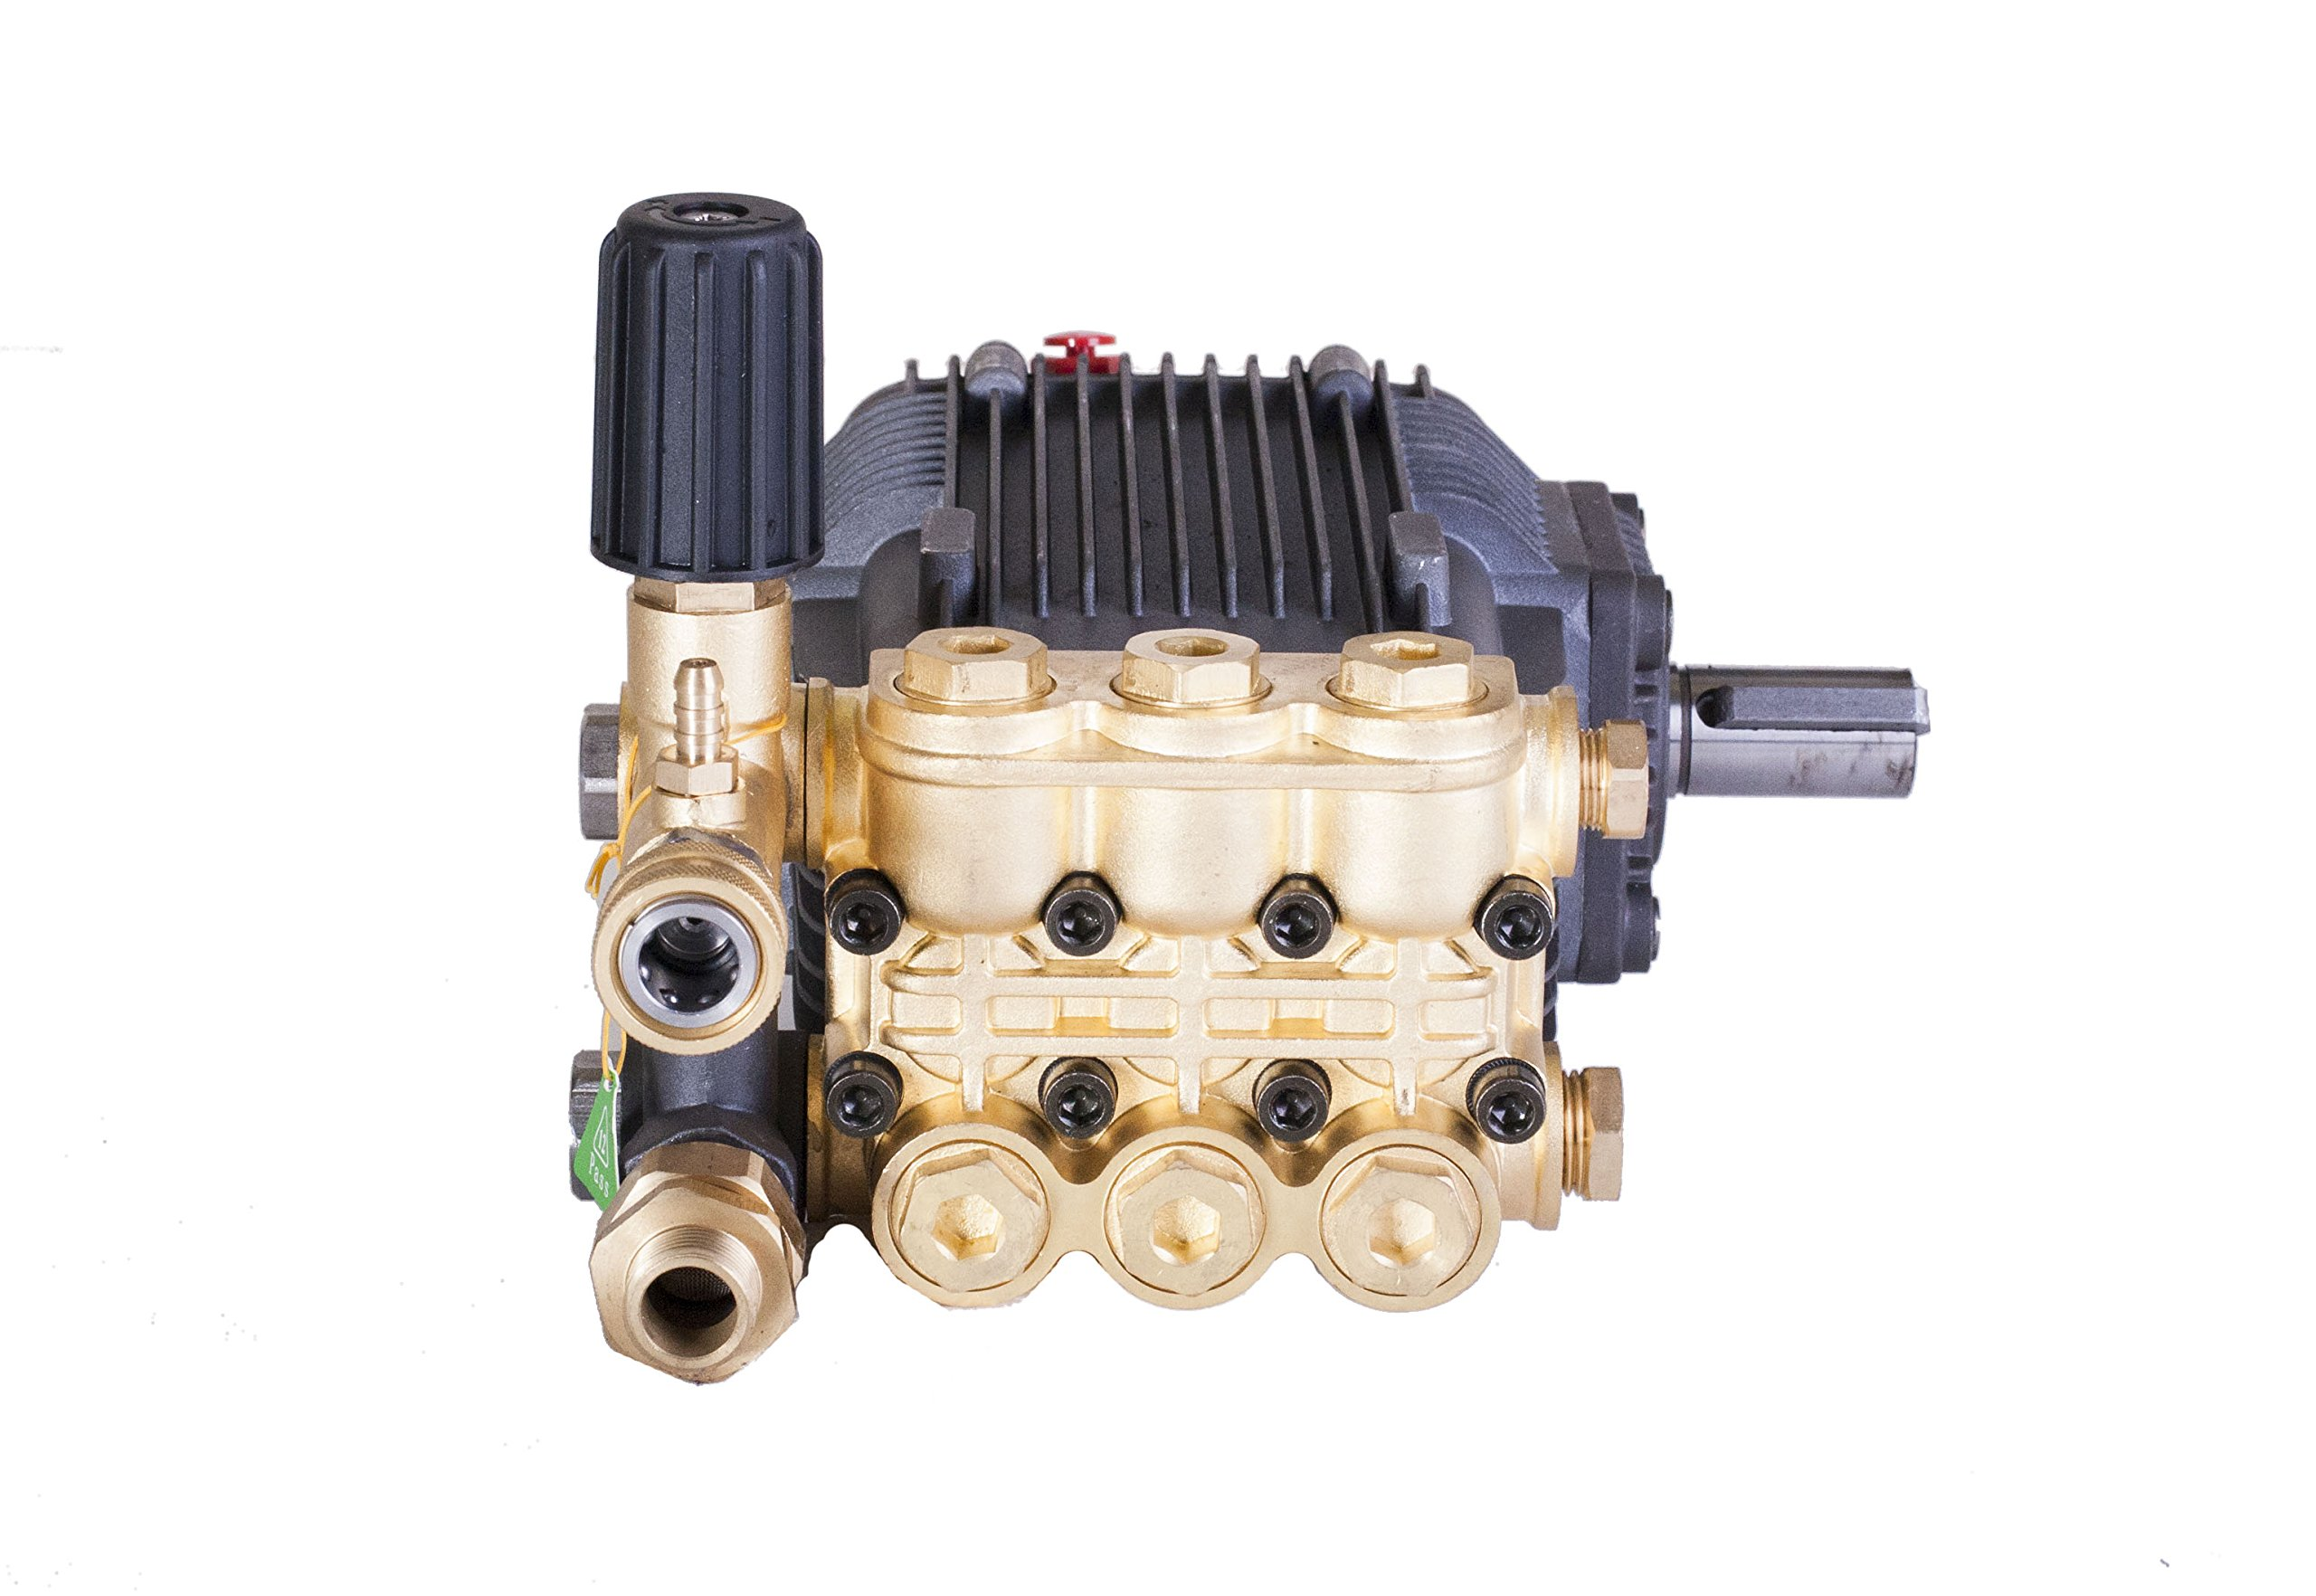 Pressure Power Washer Replacement Pump Solid Shaft 24 mm Belt Drive 3600 PSI by Canpump (Image #4)